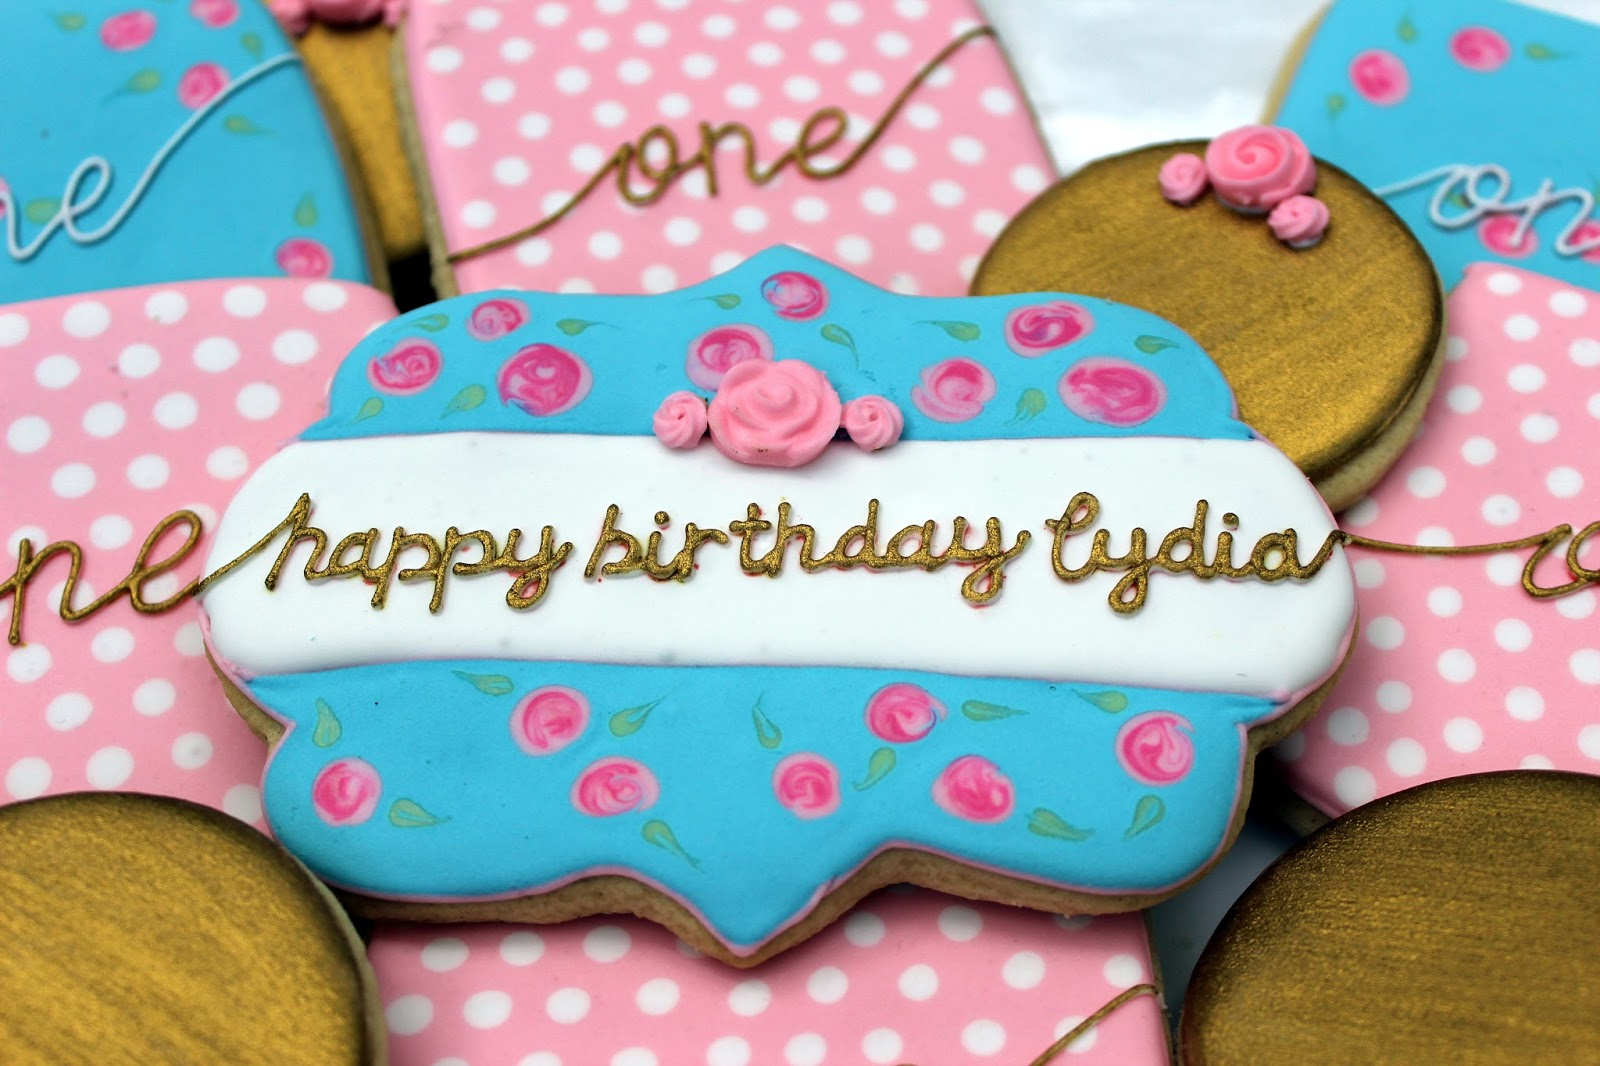 happy birthday lydia Sweet Melissa's Cookies: Happy Birthday Lydia!: Shabby Chic Cookies happy birthday lydia